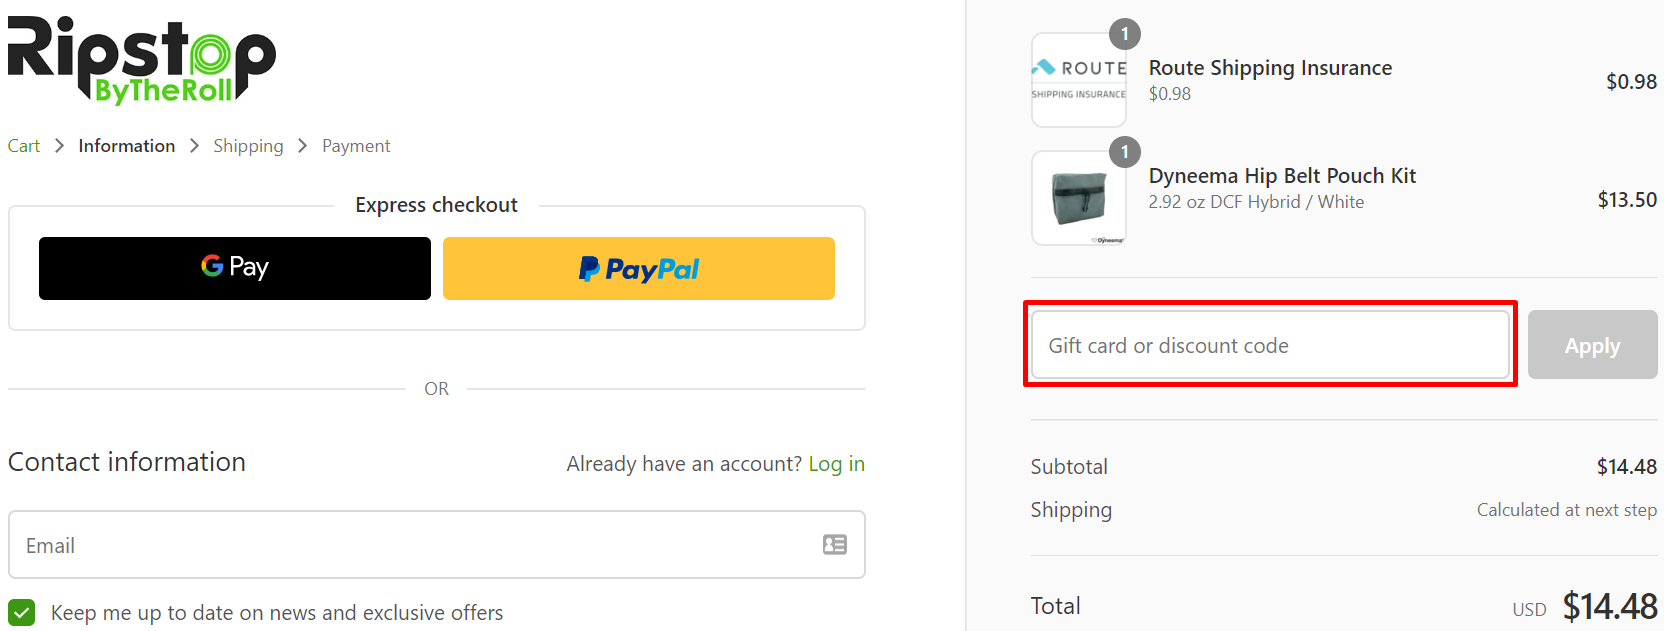 How do I use my Ripstop by the Roll coupon code?